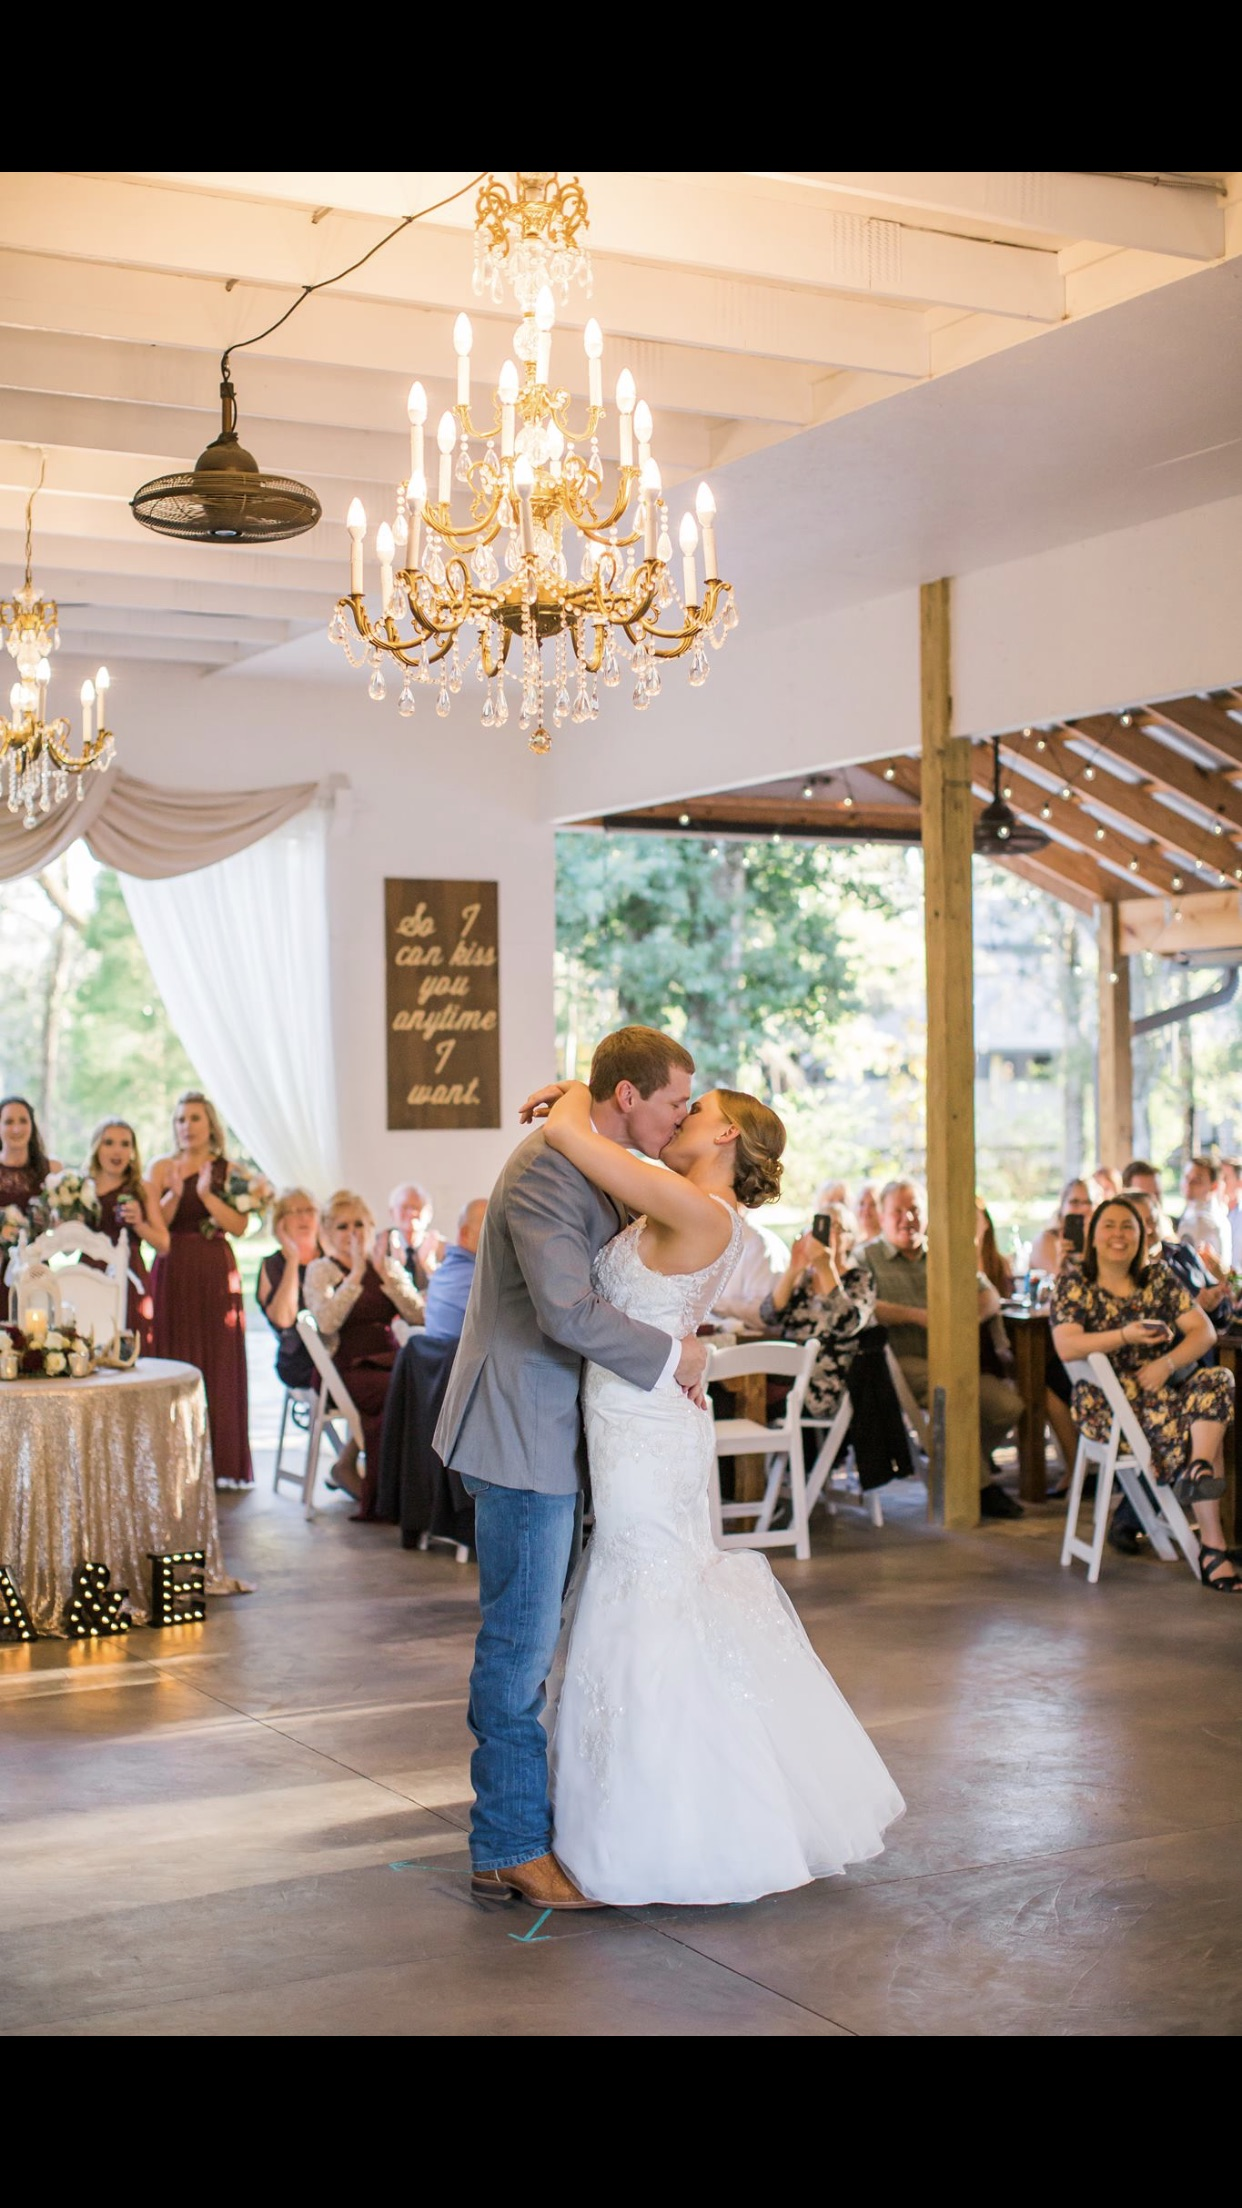 The White Barn - couple dancing in barn wedding venue